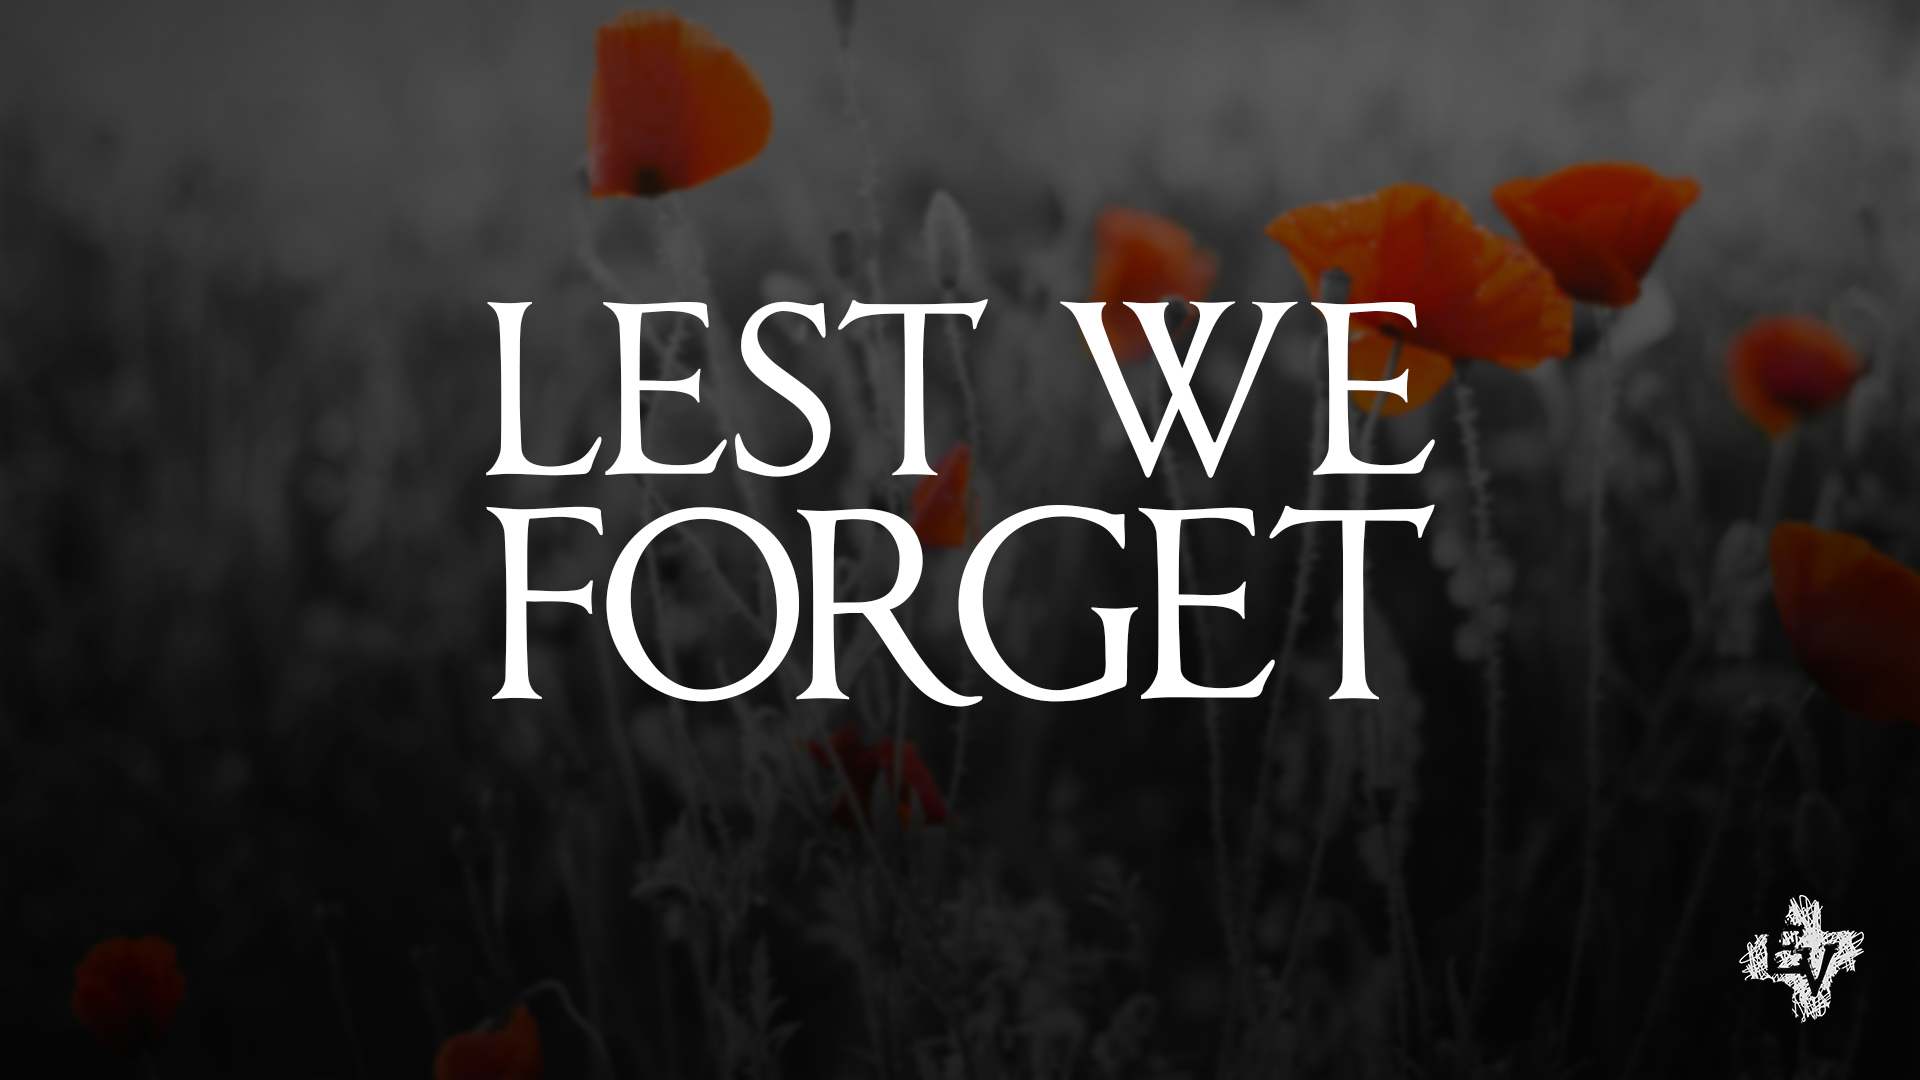 lest we forget - photo #14